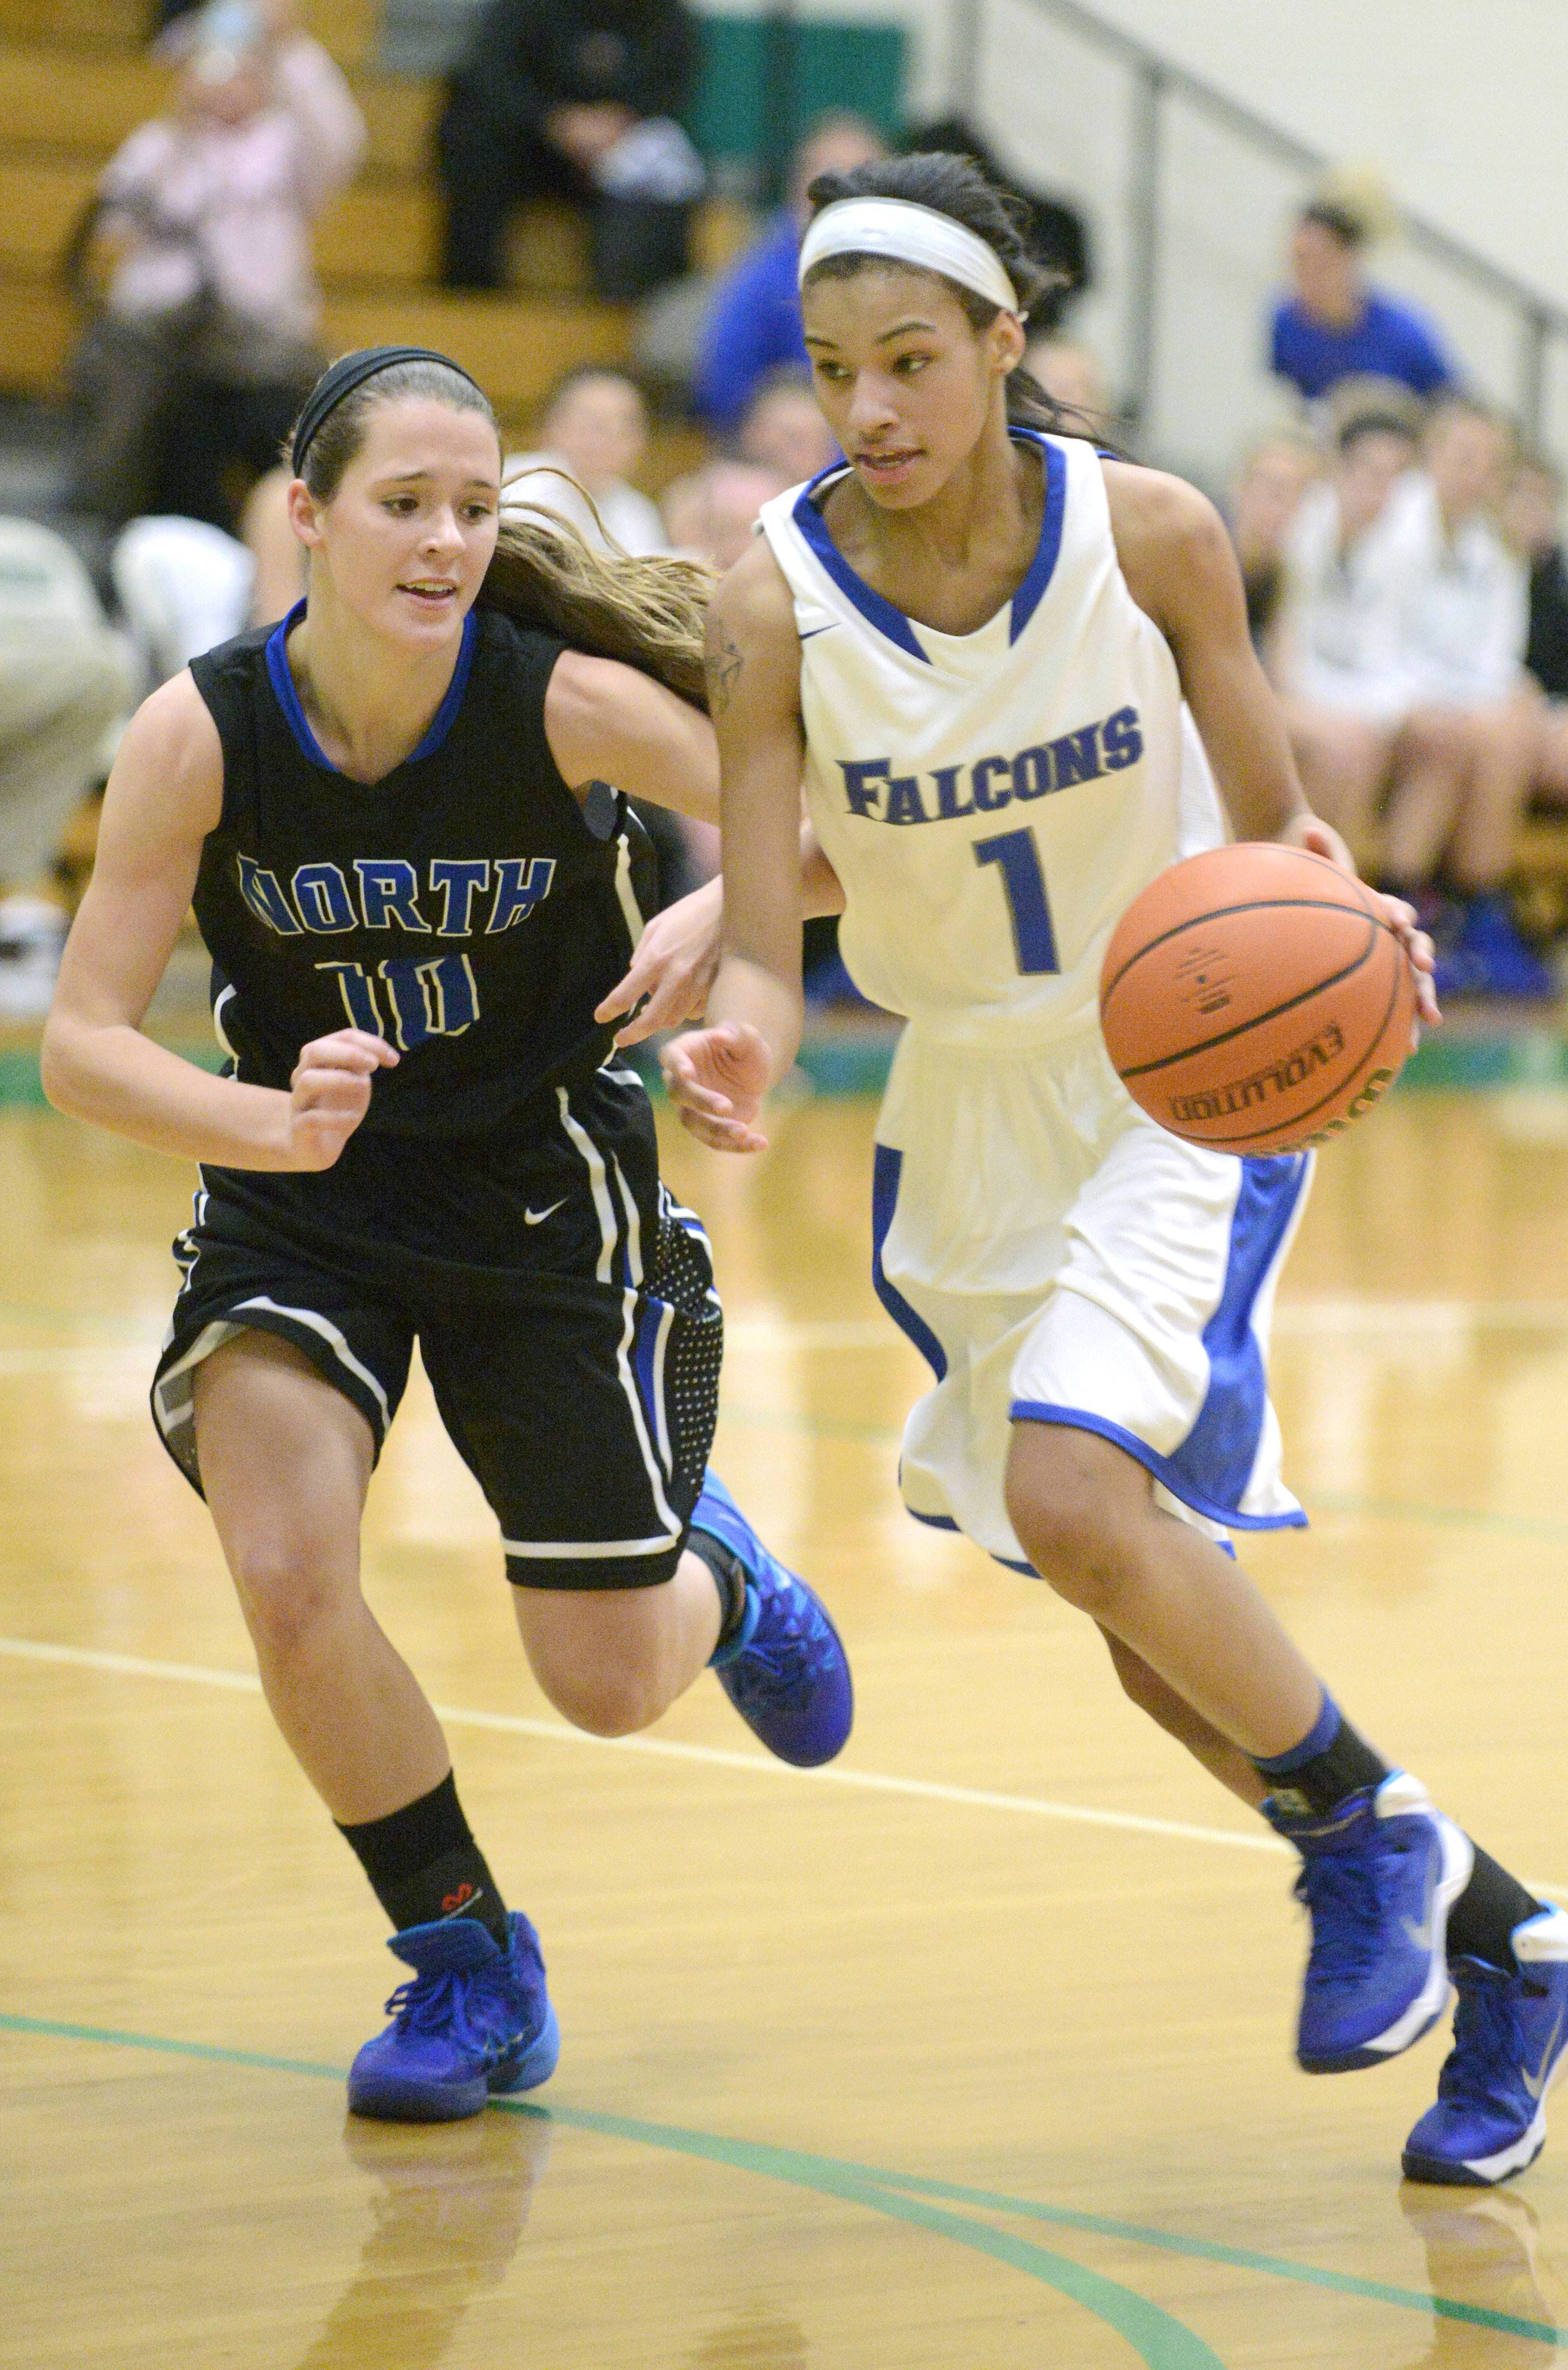 St. Charles North's Ashling Davern, pictured guarding Wheaton North's Emari Jones earlier this season, has received high praise for her defense this year.